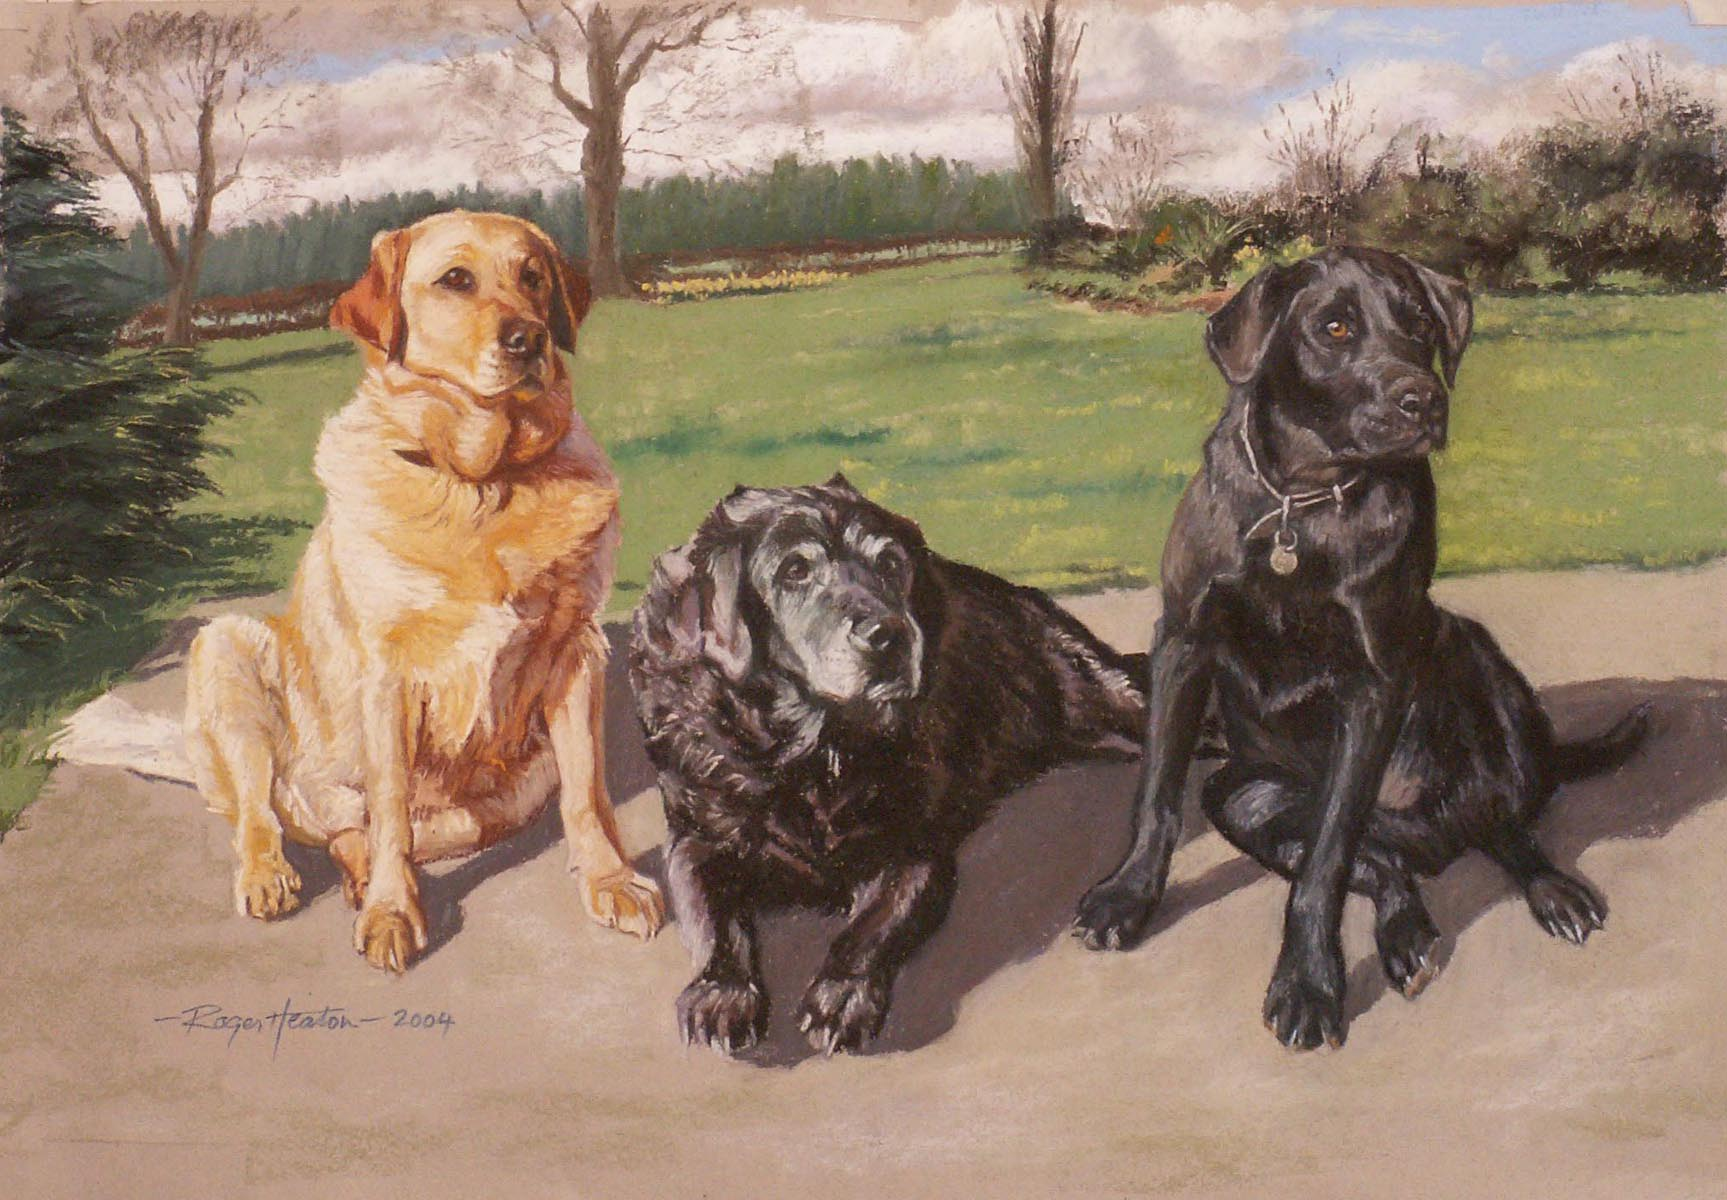 Three generations of Labradors